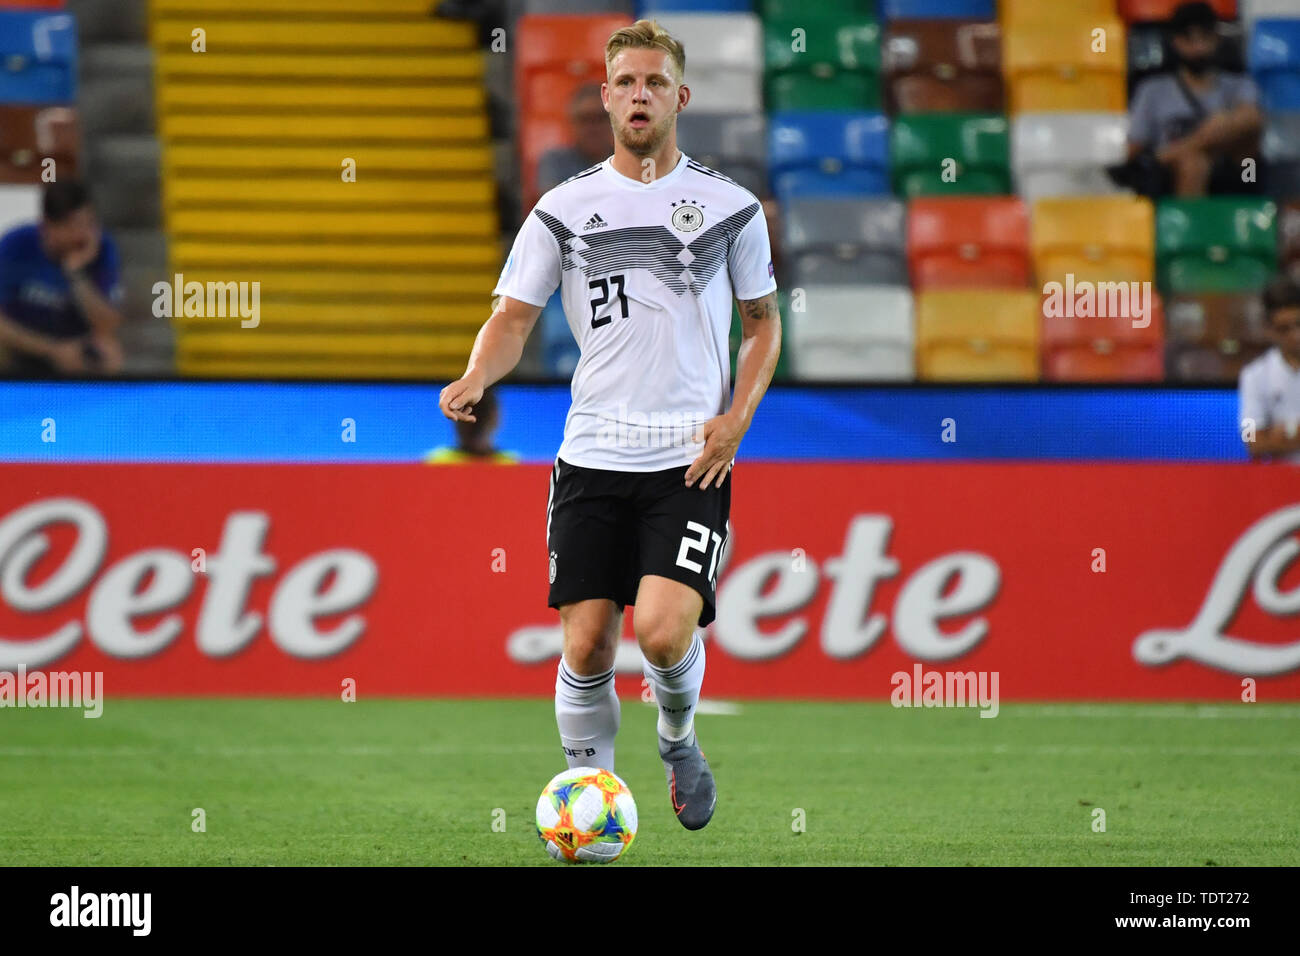 Udine, Italien. 17th June, 2019. Arne MAIER (GER), Action, Single Action, Frame, Cut Out, Full Body, Whole Figure. Germany (GER) -Daenemark (DEN) 3-1, on 17.06.2019 Stadio Friuli Udine. Football U-21, UEFA Under21 European Championship in Italy/SanMarino from 16.-30.06.2019. | Usage worldwide Credit: dpa/Alamy Live News - Stock Image